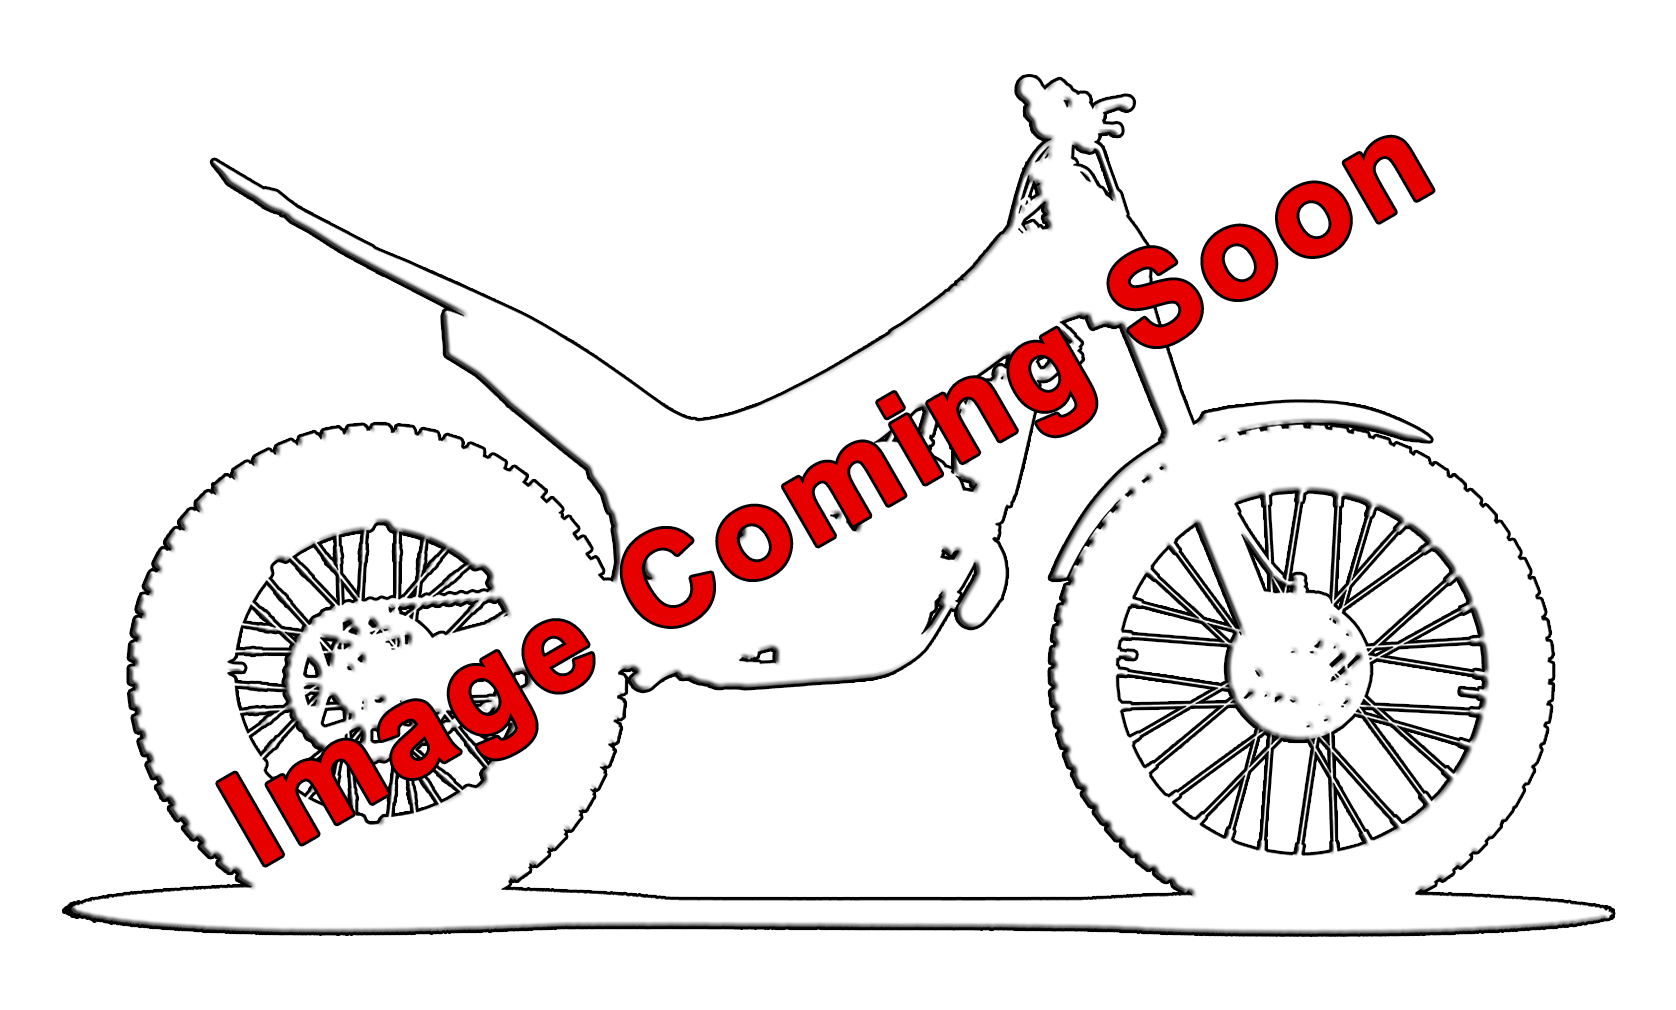 https://betamotorcycles.co.nz/wp-content/uploads/2019/09/bike-coming-soon-2.png